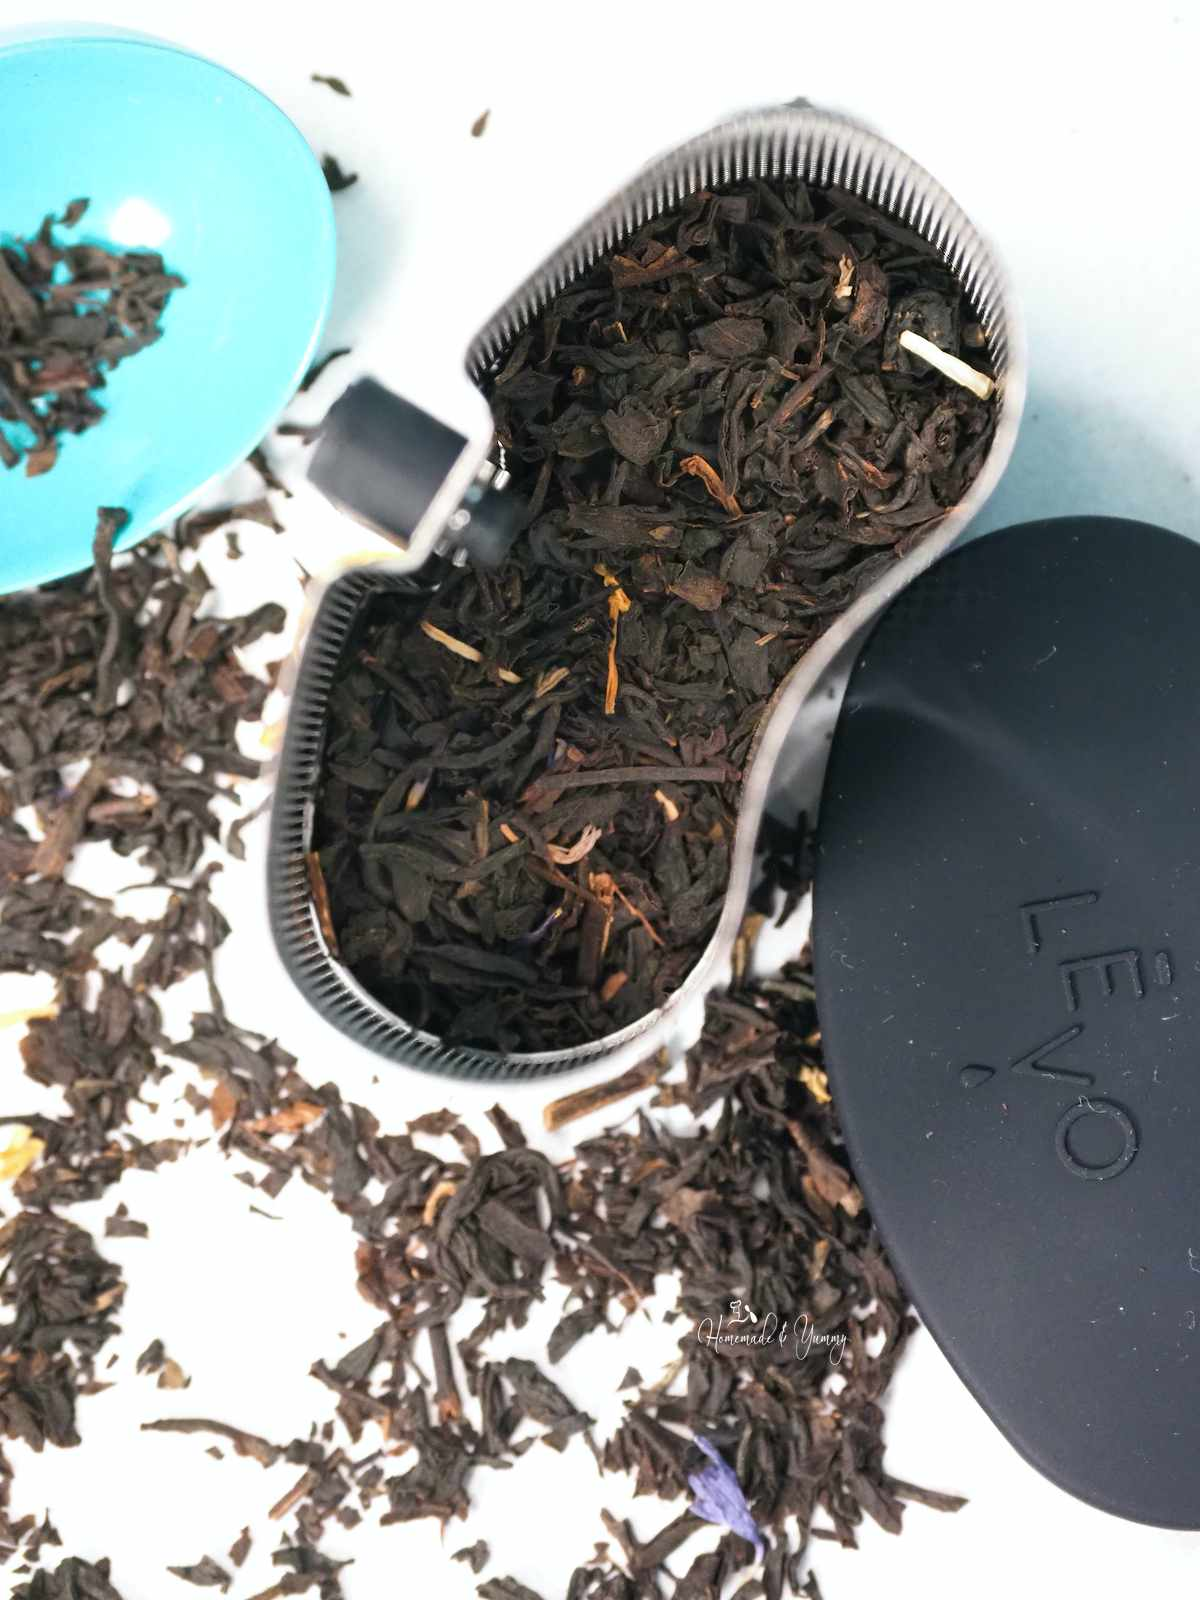 Loose tea placed in the herb pod